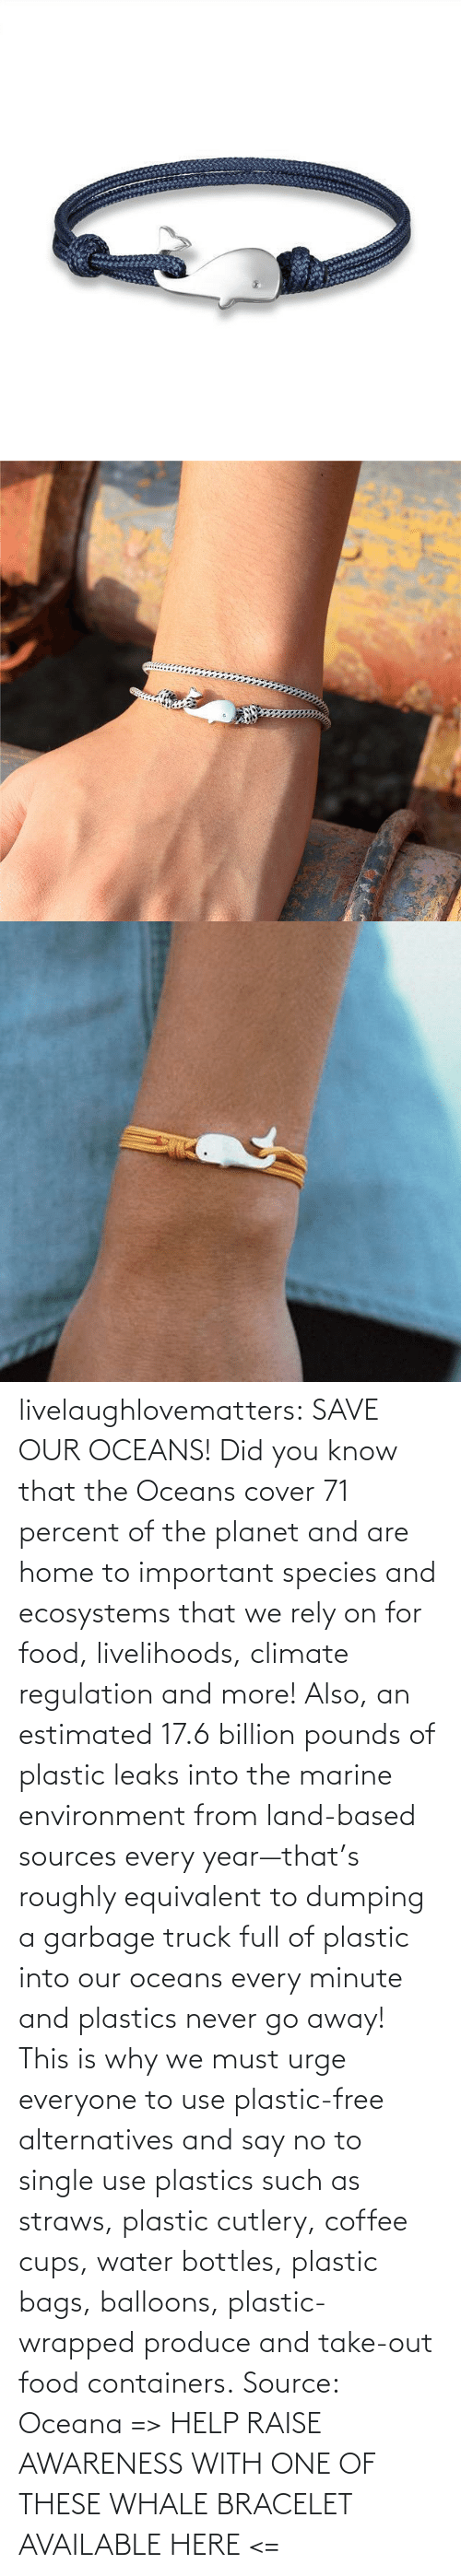 planet: livelaughlovematters: SAVE OUR OCEANS!  Did you know that the Oceans cover 71 percent of the planet and are home to important species and ecosystems that we rely on for food, livelihoods, climate regulation and more! Also, an estimated 17.6 billion pounds of plastic leaks into the marine environment from land-based sources every year—that's roughly equivalent to dumping a garbage truck full of plastic into our oceans every minute and plastics never go away! This is why we must urge everyone to use plastic-free alternatives and say no to single use plastics such as straws, plastic cutlery, coffee cups, water bottles, plastic bags, balloons, plastic-wrapped produce and take-out food containers. Source: Oceana => HELP RAISE AWARENESS WITH ONE OF THESE WHALE BRACELET AVAILABLE HERE <=